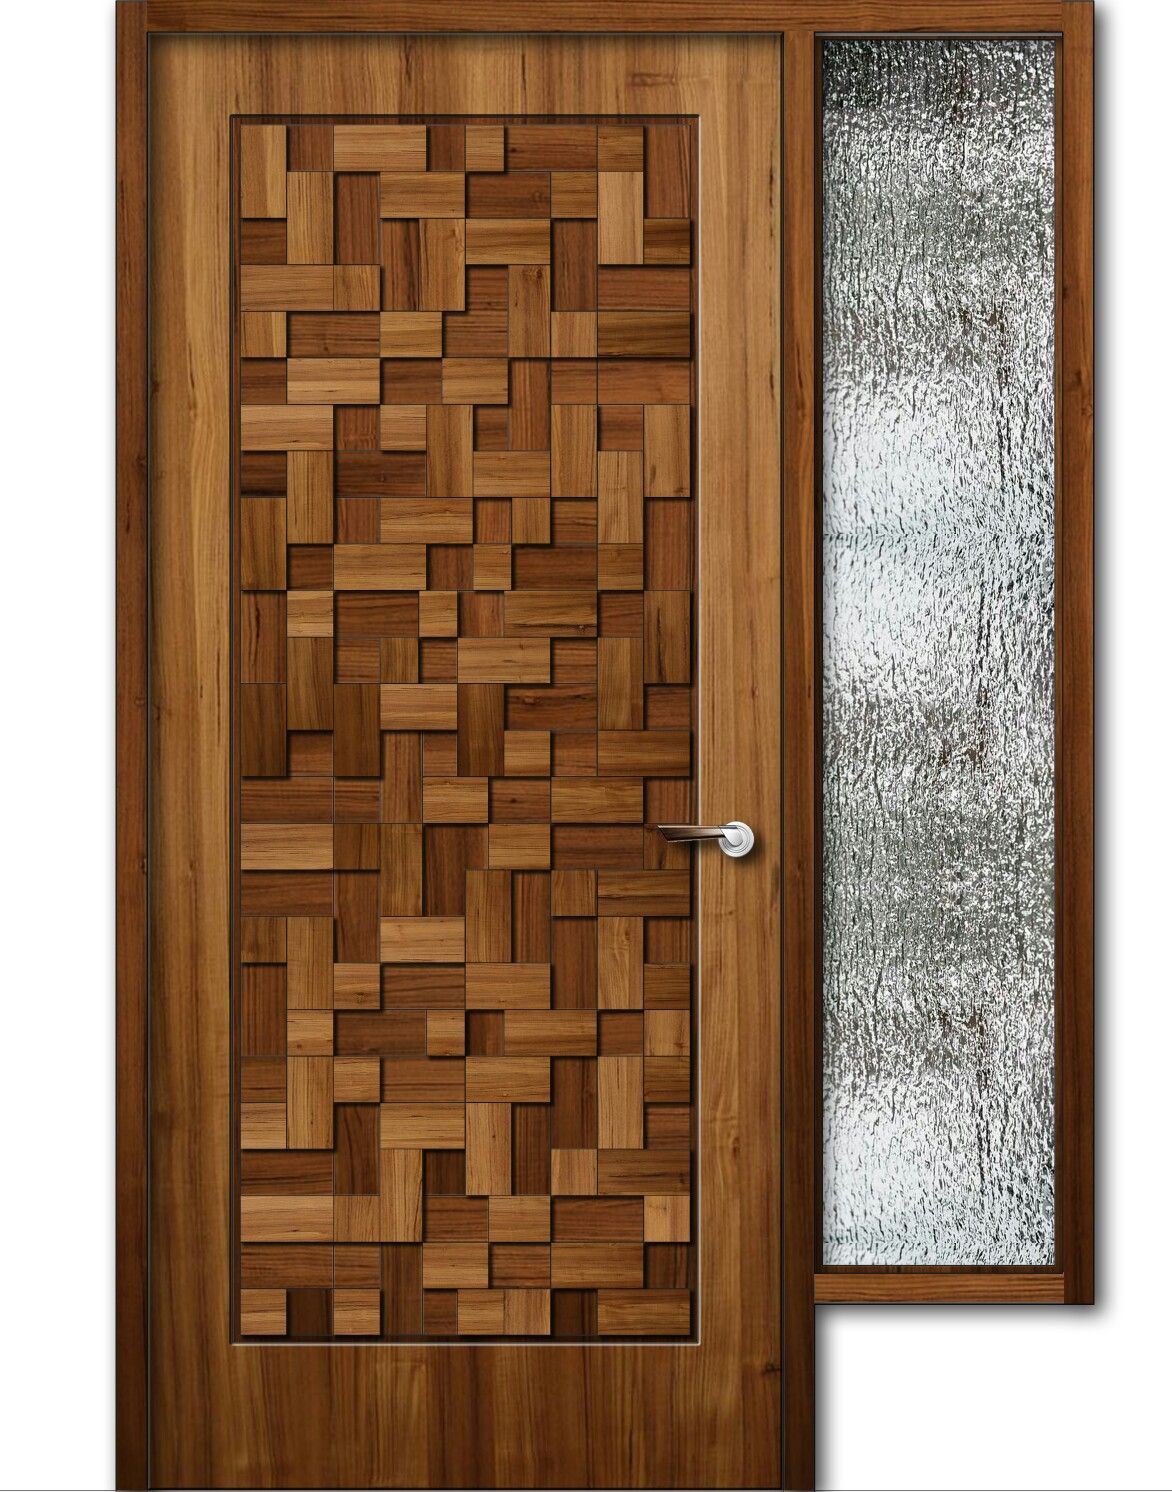 Teak wood finish wooden door with window 8feet height for Window design wooden